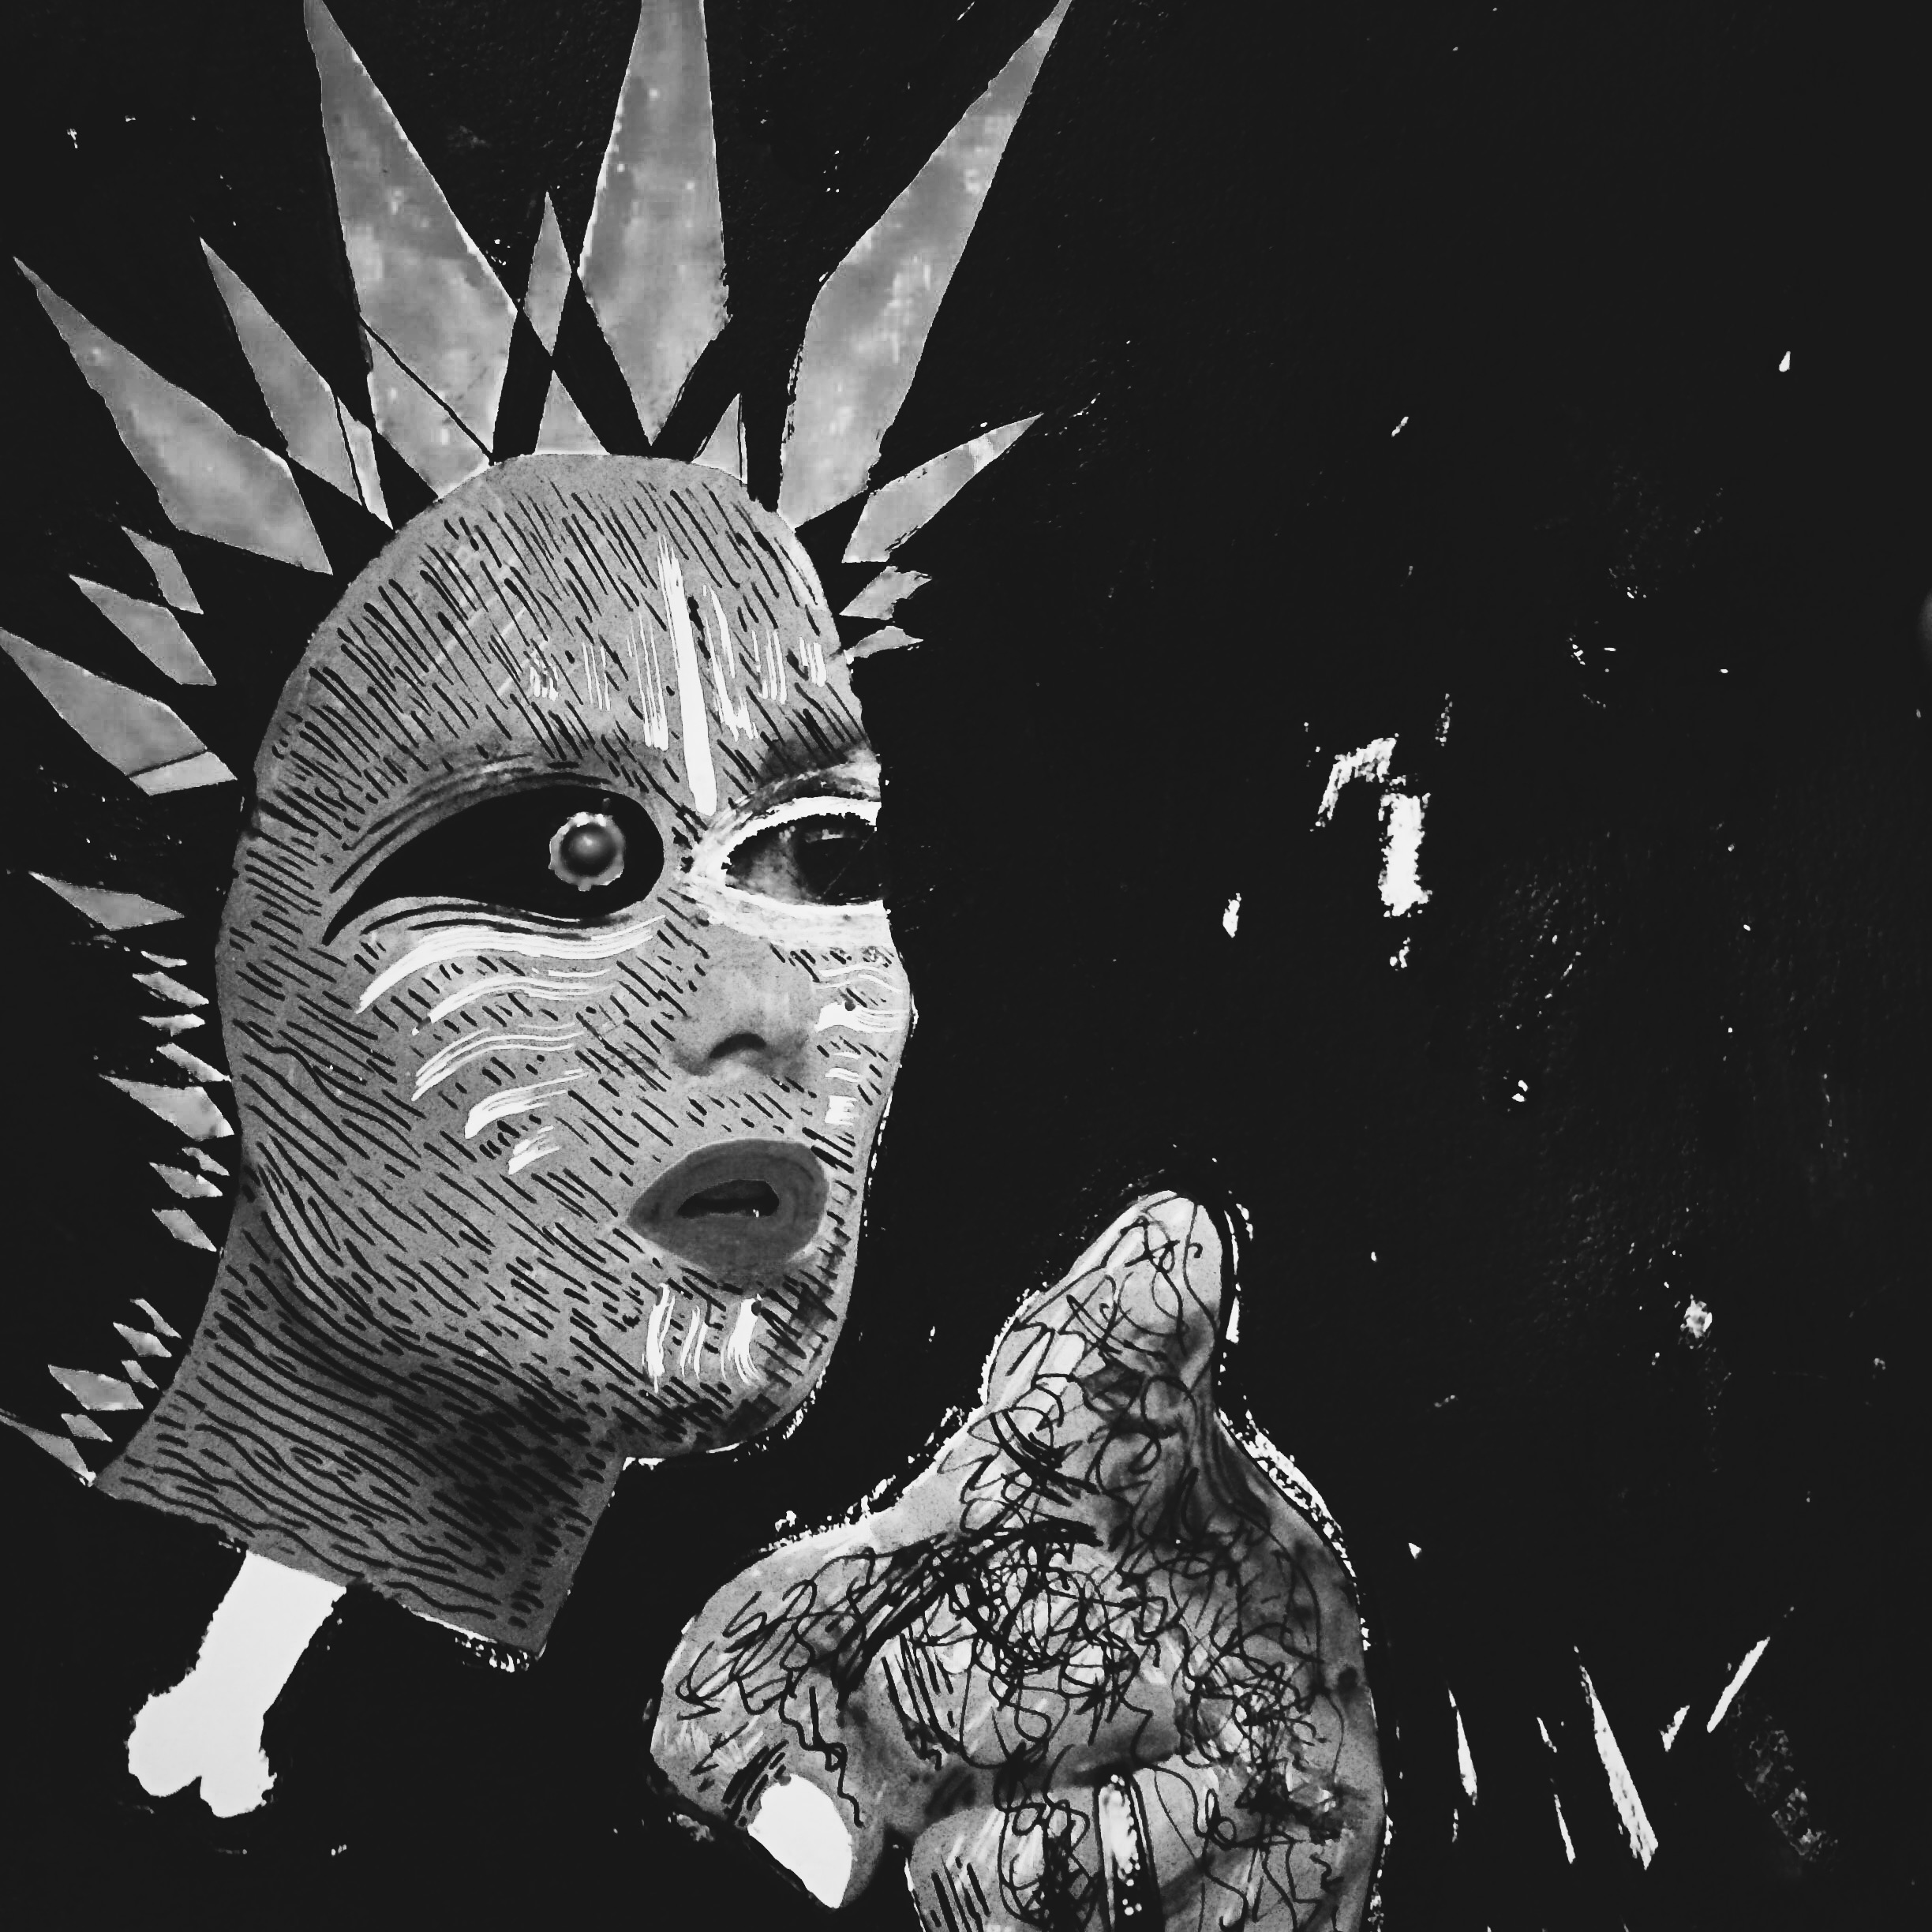 Tribal decapitated punk chic floating in space